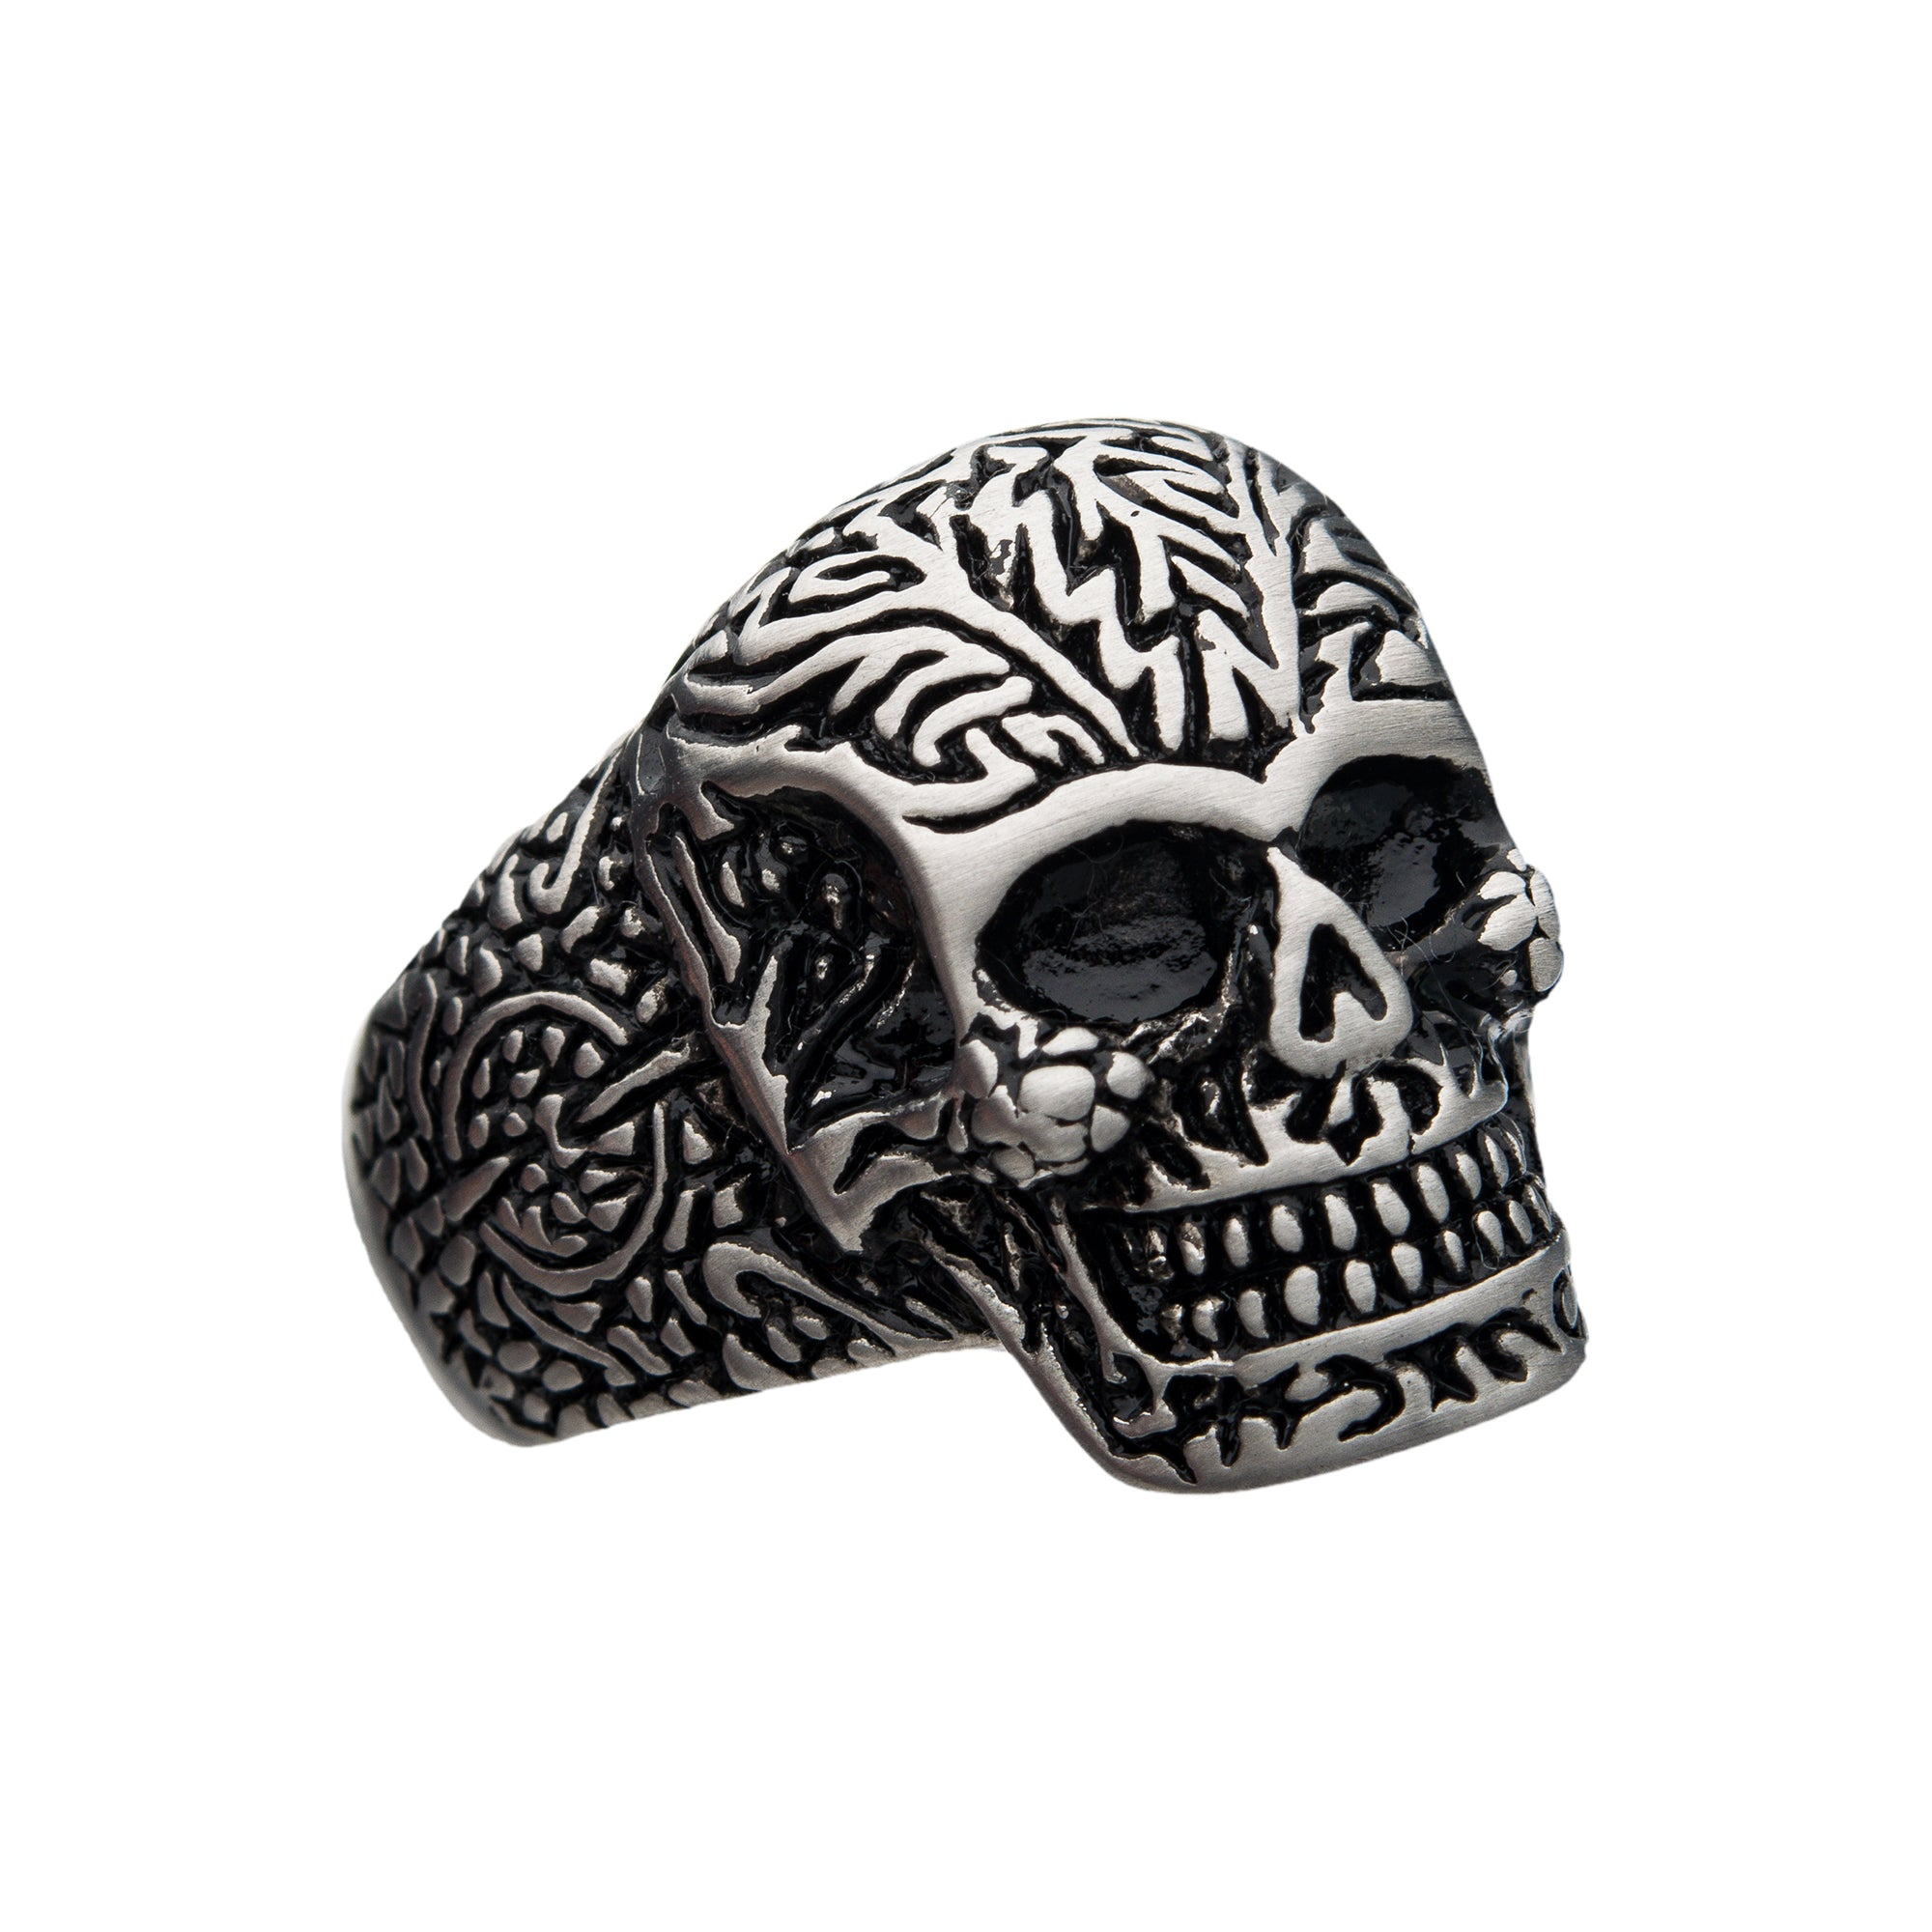 Steel Matte Finish Skull Ring